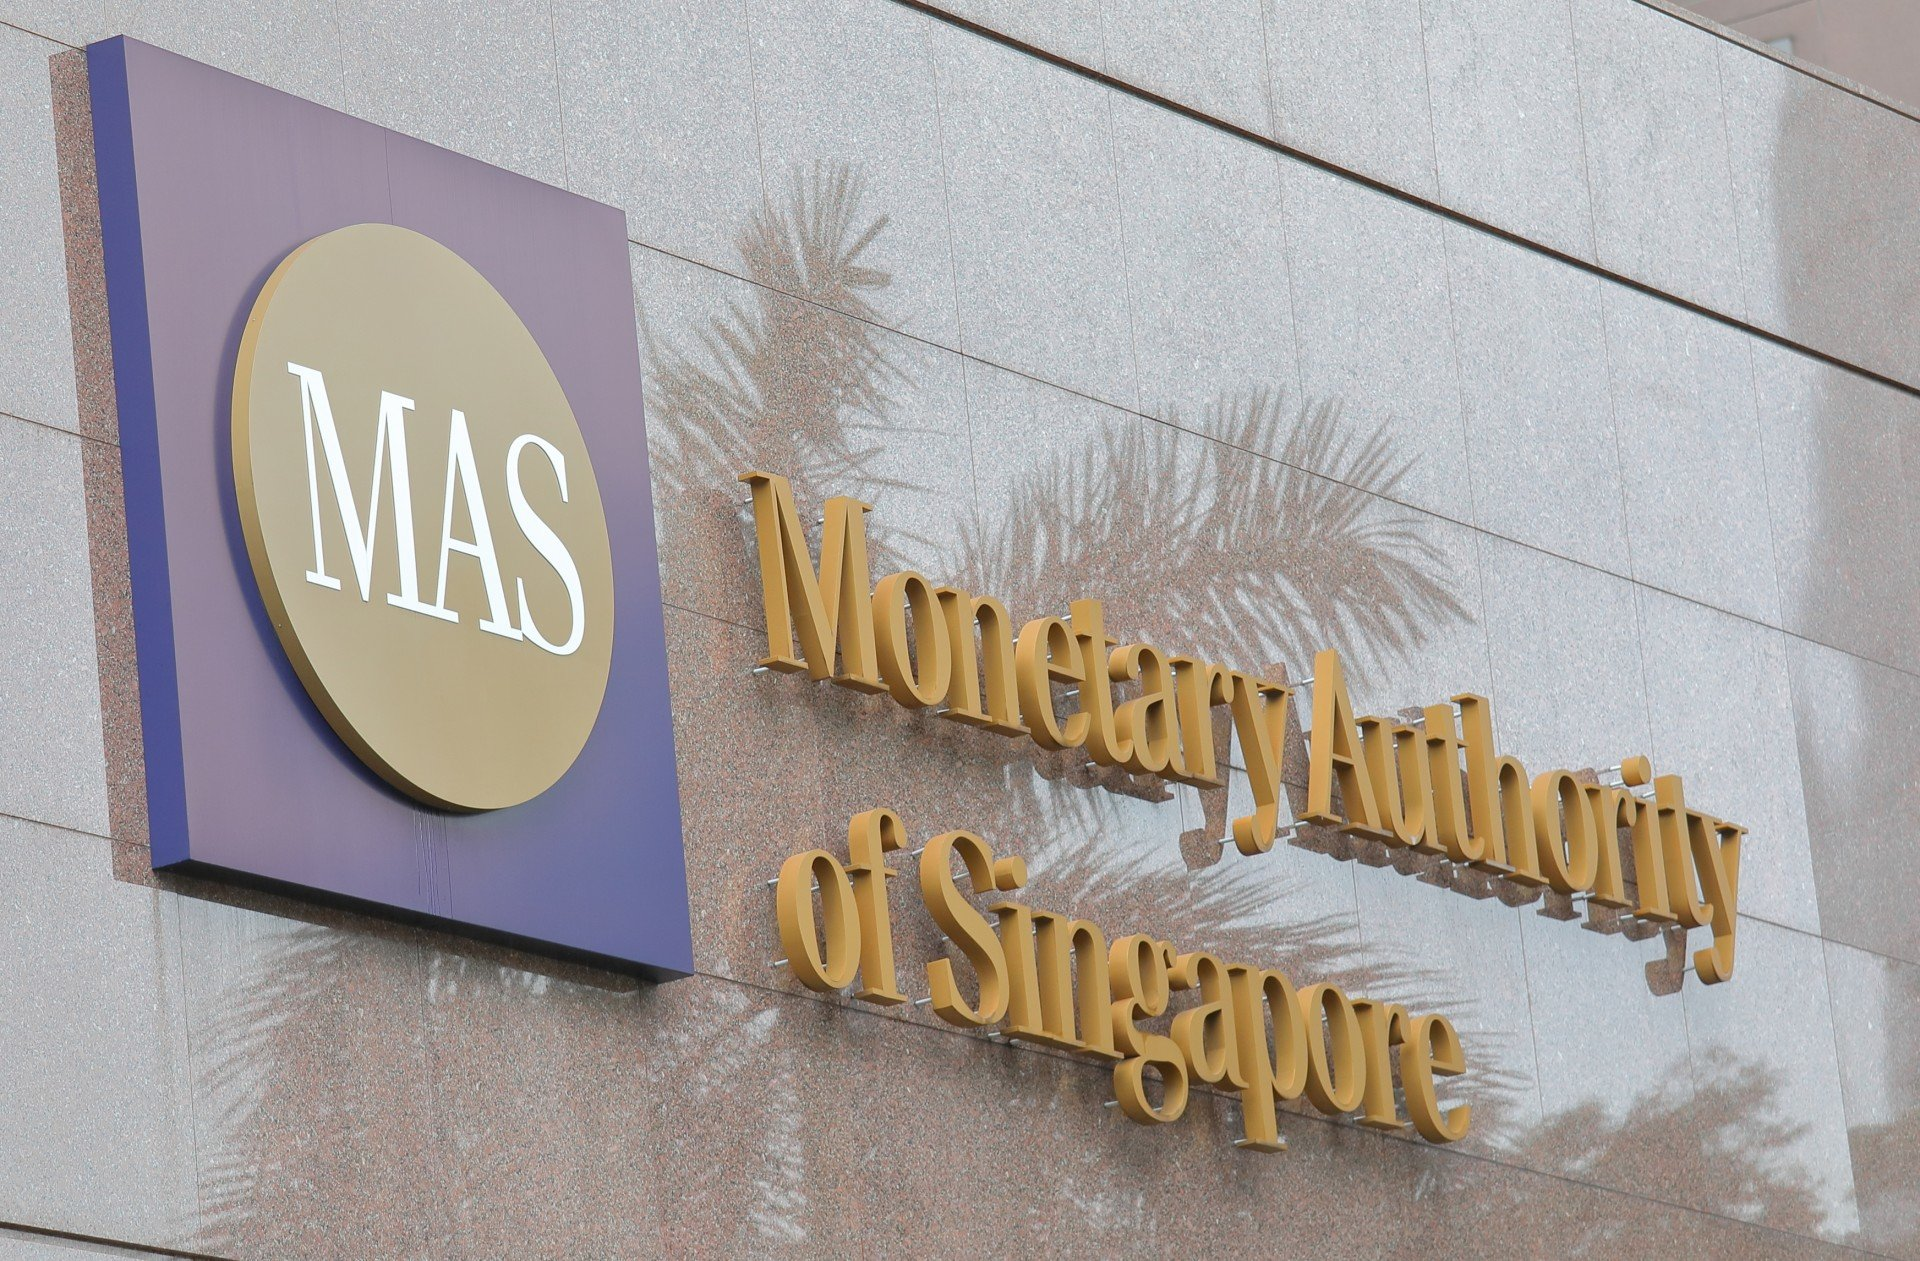 The MAS also reprimanded Apical's CEO and director Yeh Yin Yee and director Bernard Kan Cheok Yin for failing to discharge their duties